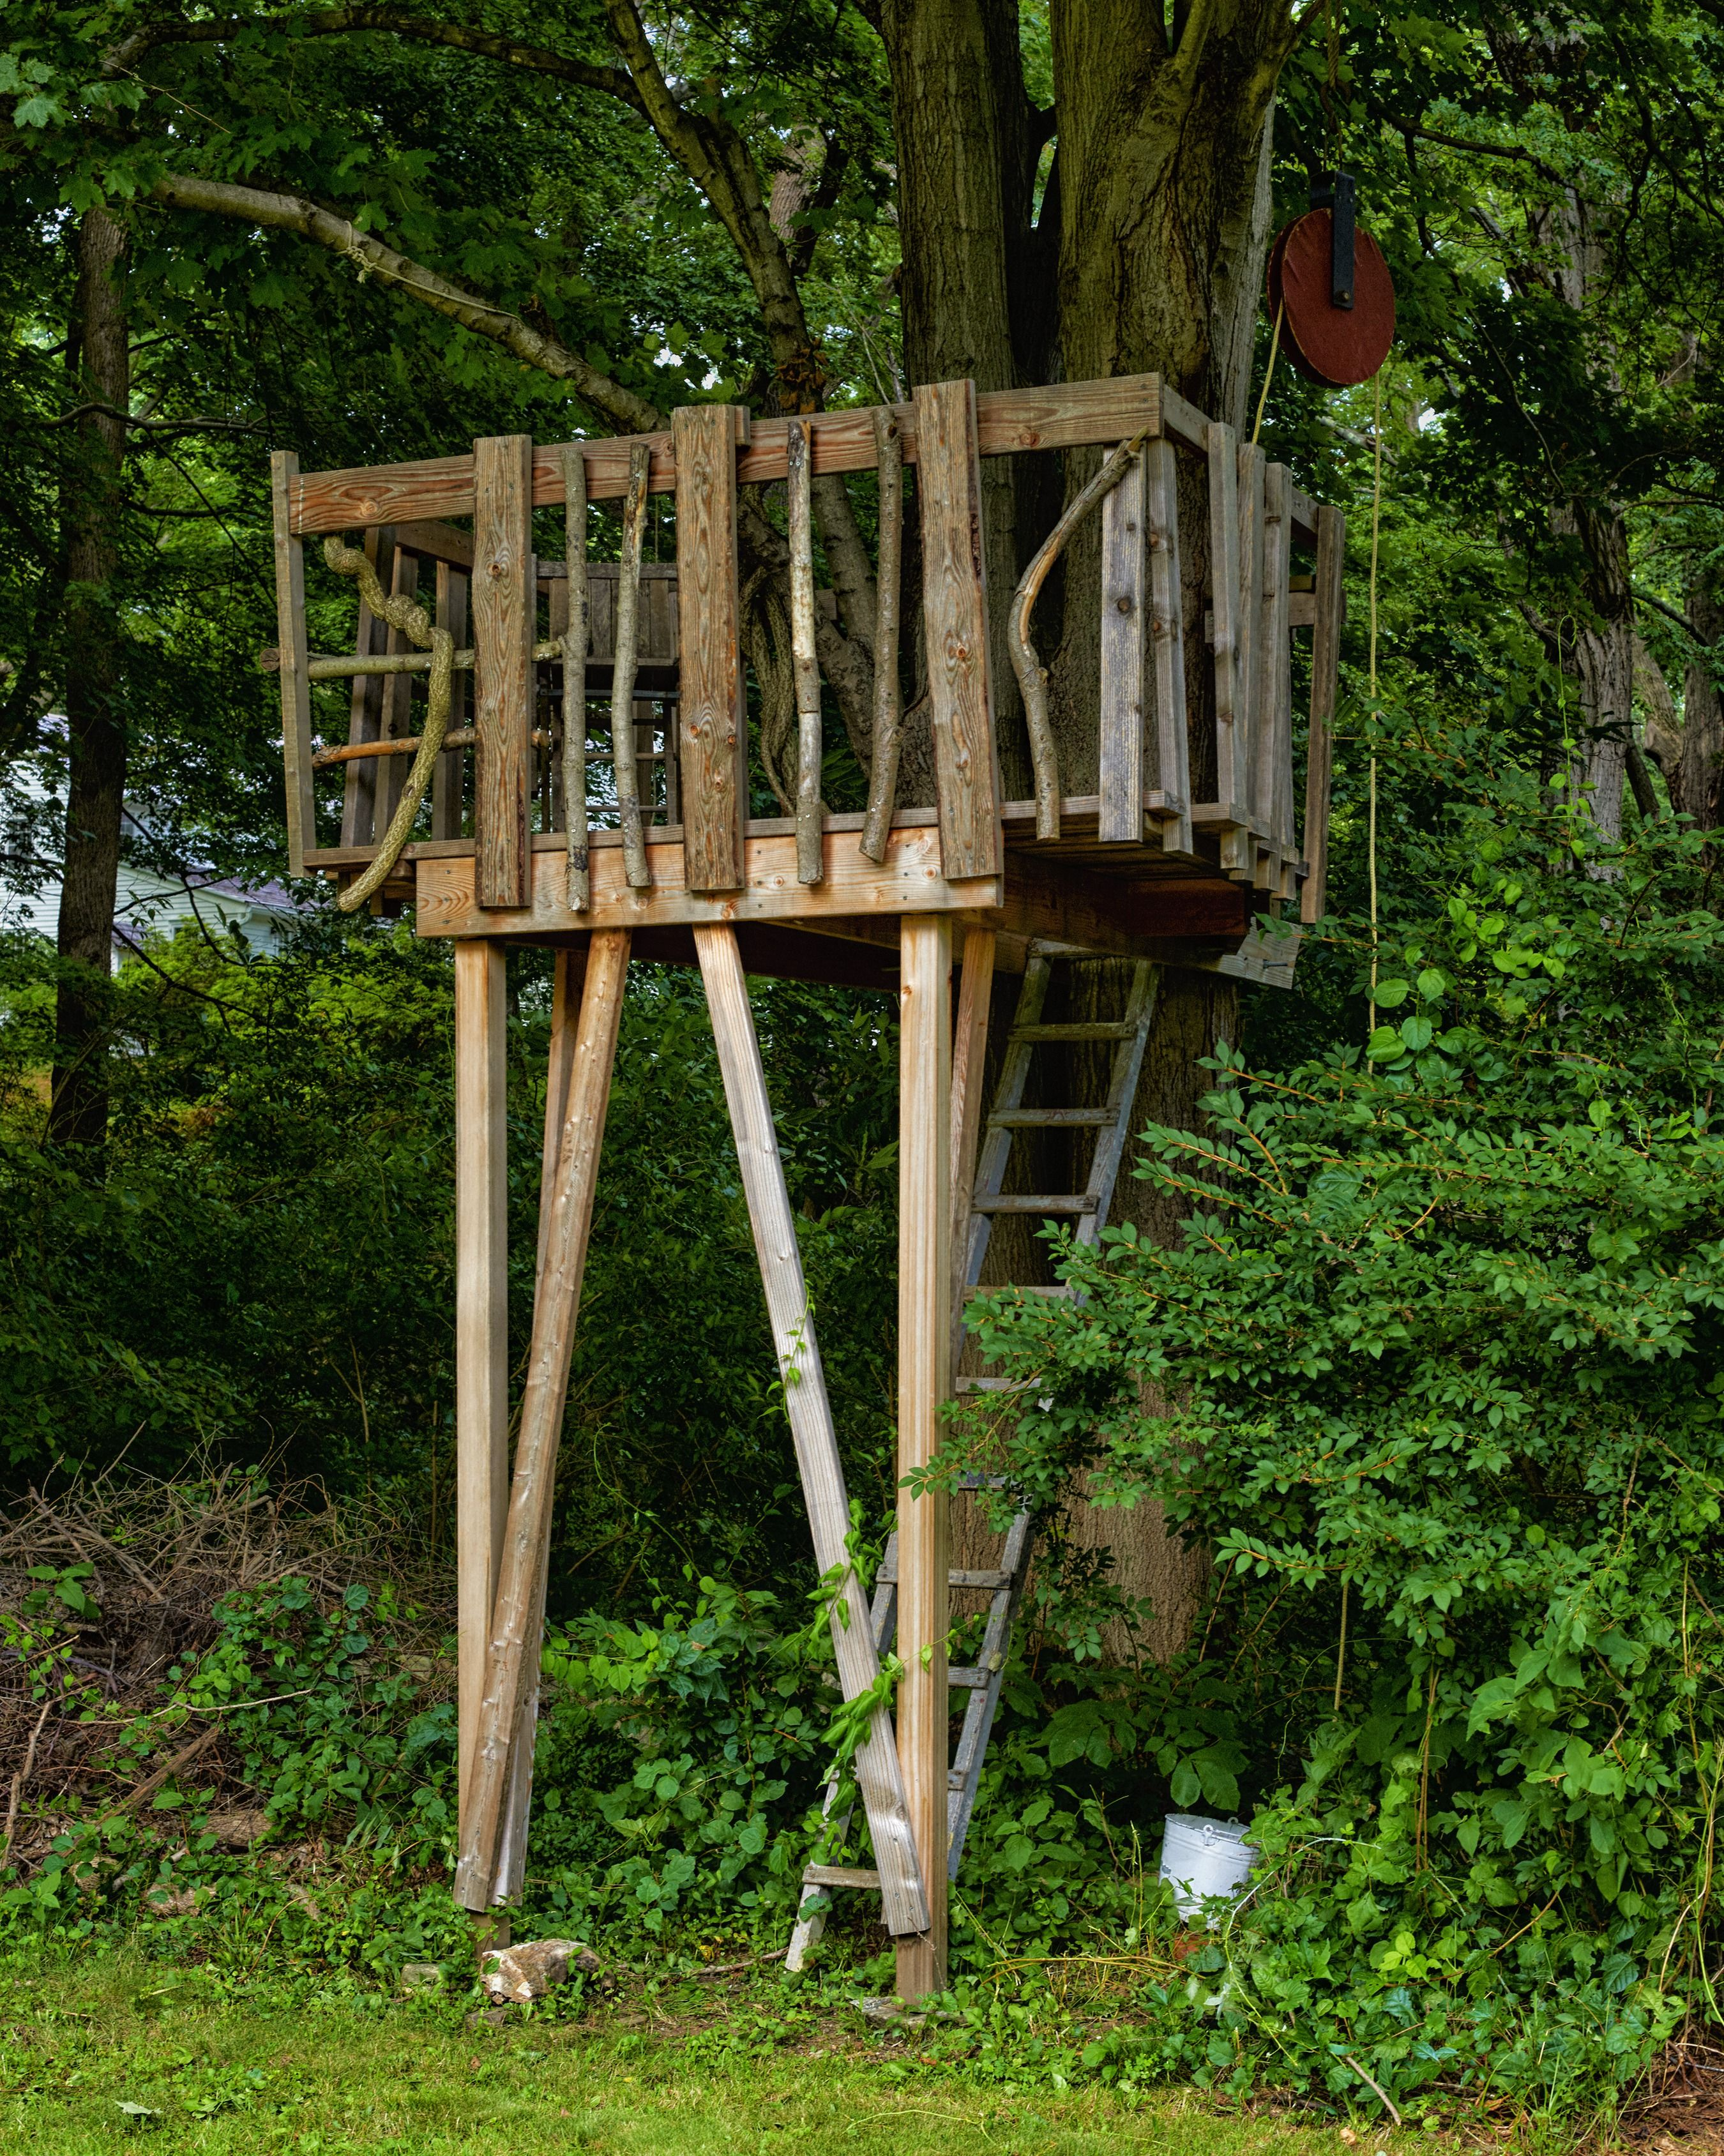 how to build a treehouse for your backyard diy tree house plans rh popularmechanics com Treehouse Ideas Treehouse Swing Set Plans